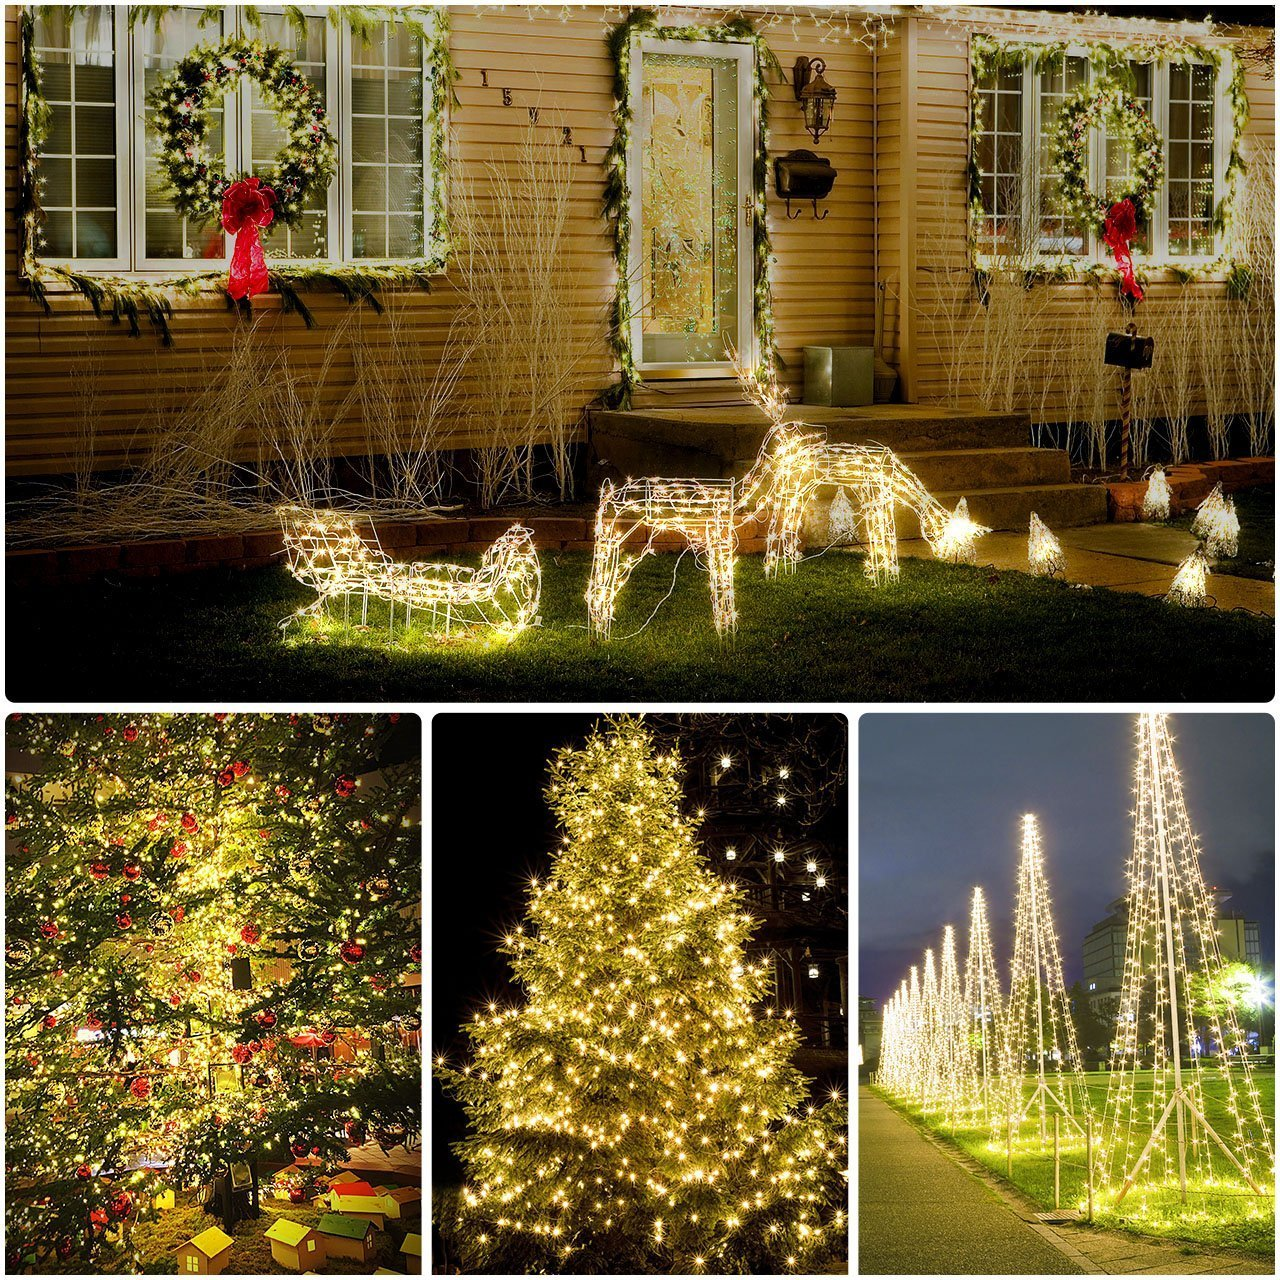 Adecorty String Lights LED Fairy Lights 2 Pack 200 LED 66ft 8 Modes USB Powered Starry String Lights with Remote, Waterproof Indoor Fairy String Lights for Home Party Bedroom Garden Wedding Christmas